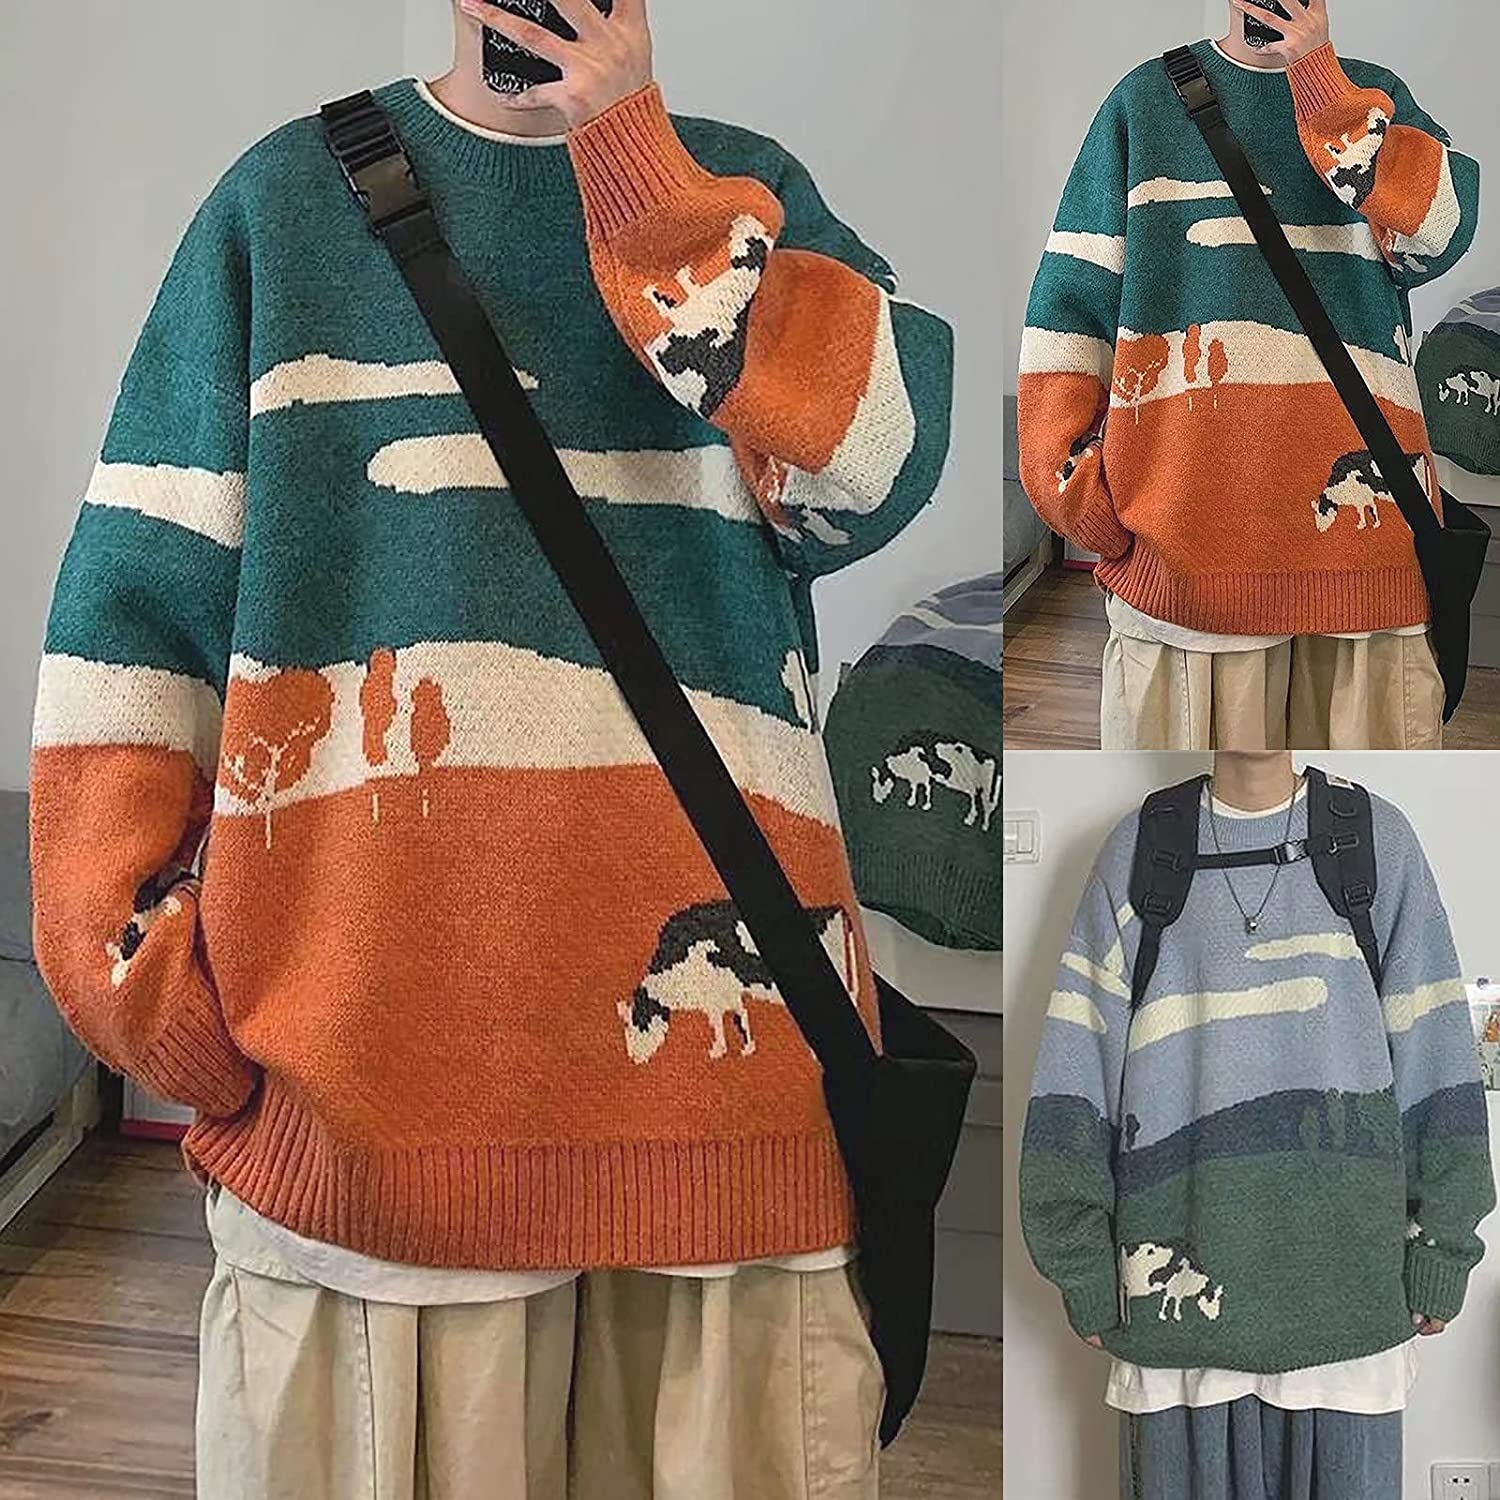 Youth Men Cows Vintage Winter Sweaters Pullover Mens O-Neck Korean Fashions Knit Sweater Women Casual Harajuku Clothes